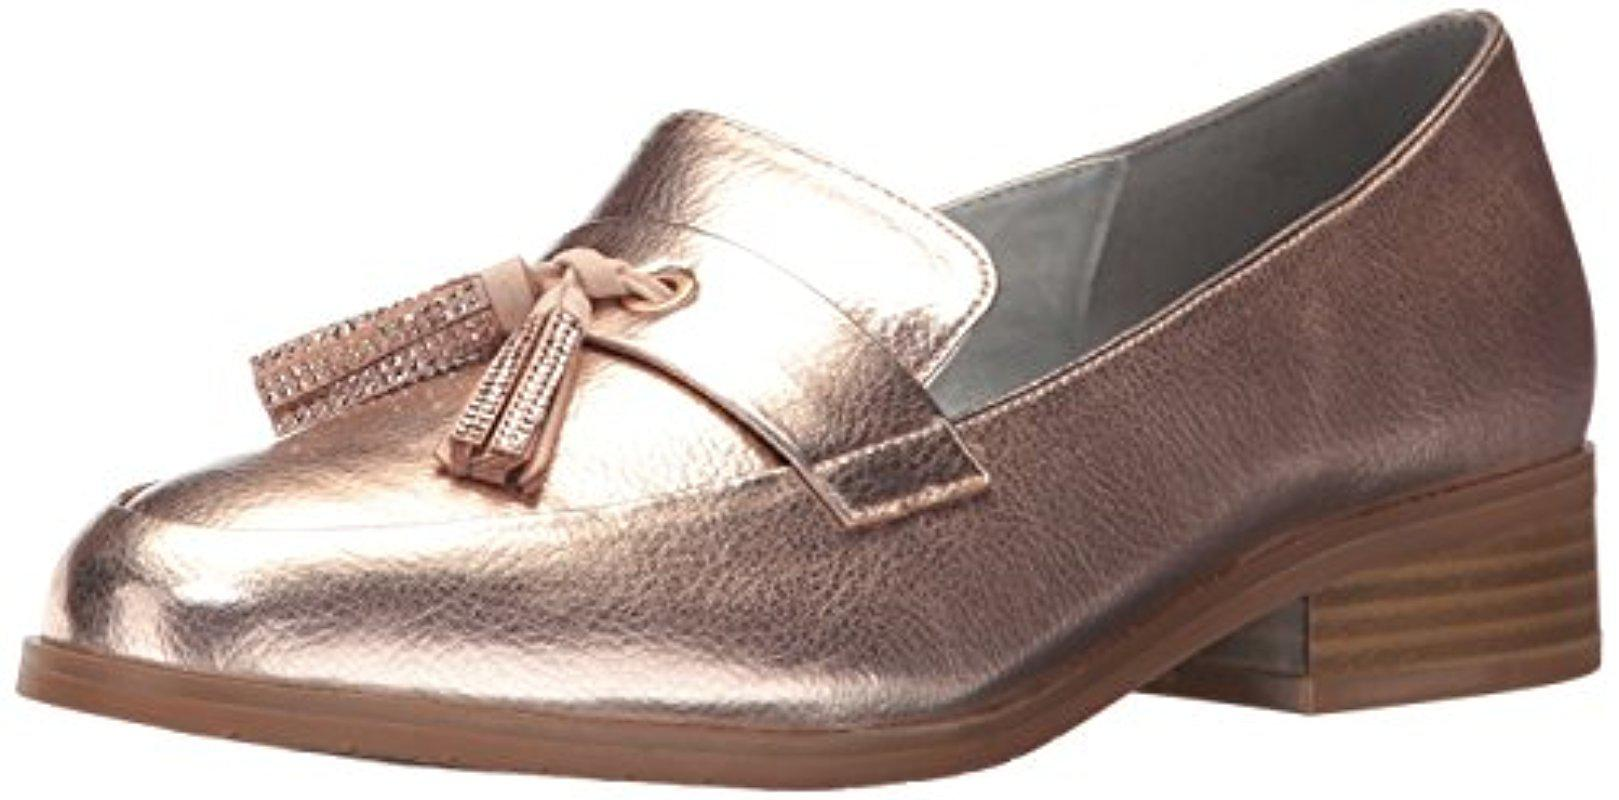 Limited New Original Online Kenneth Cole Reaction Jet Ahead Tassel Loafer(Women's) -Black Multi Fabric Outlet Enjoy Discount Extremely TuQs0r